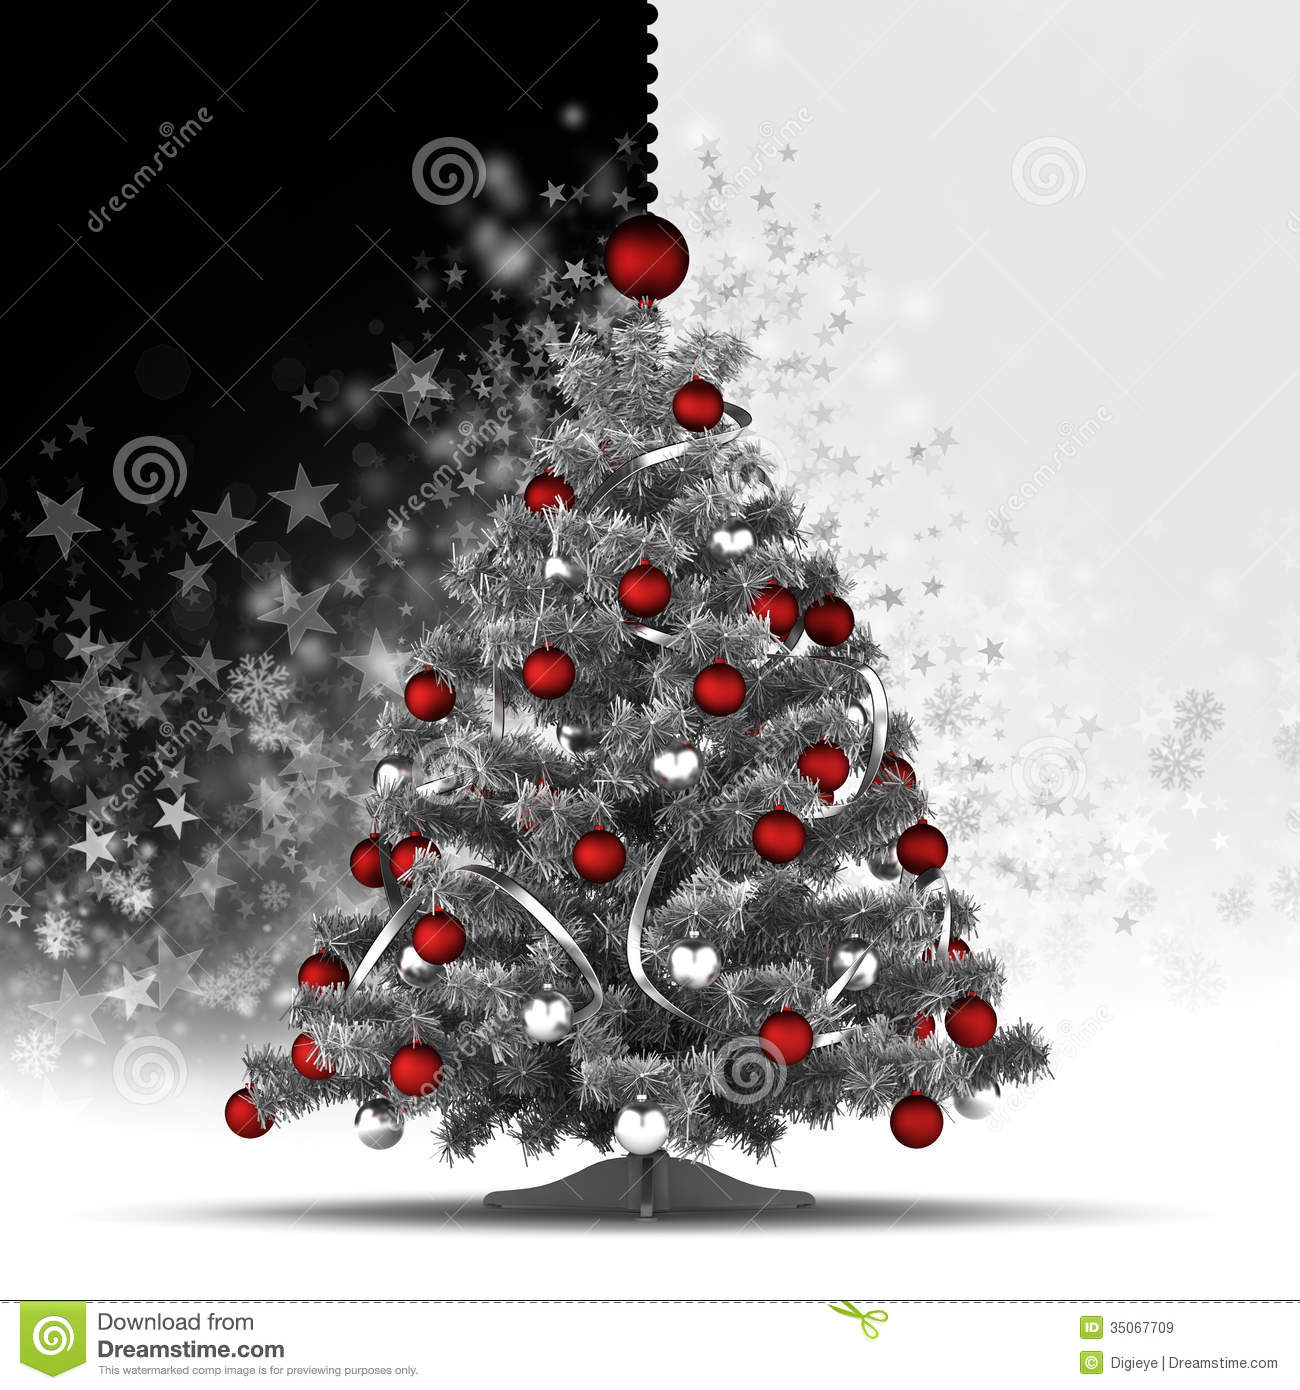 white christmas tree with red and black decorations photo18 - White Christmas Tree With Red And Black Decorations